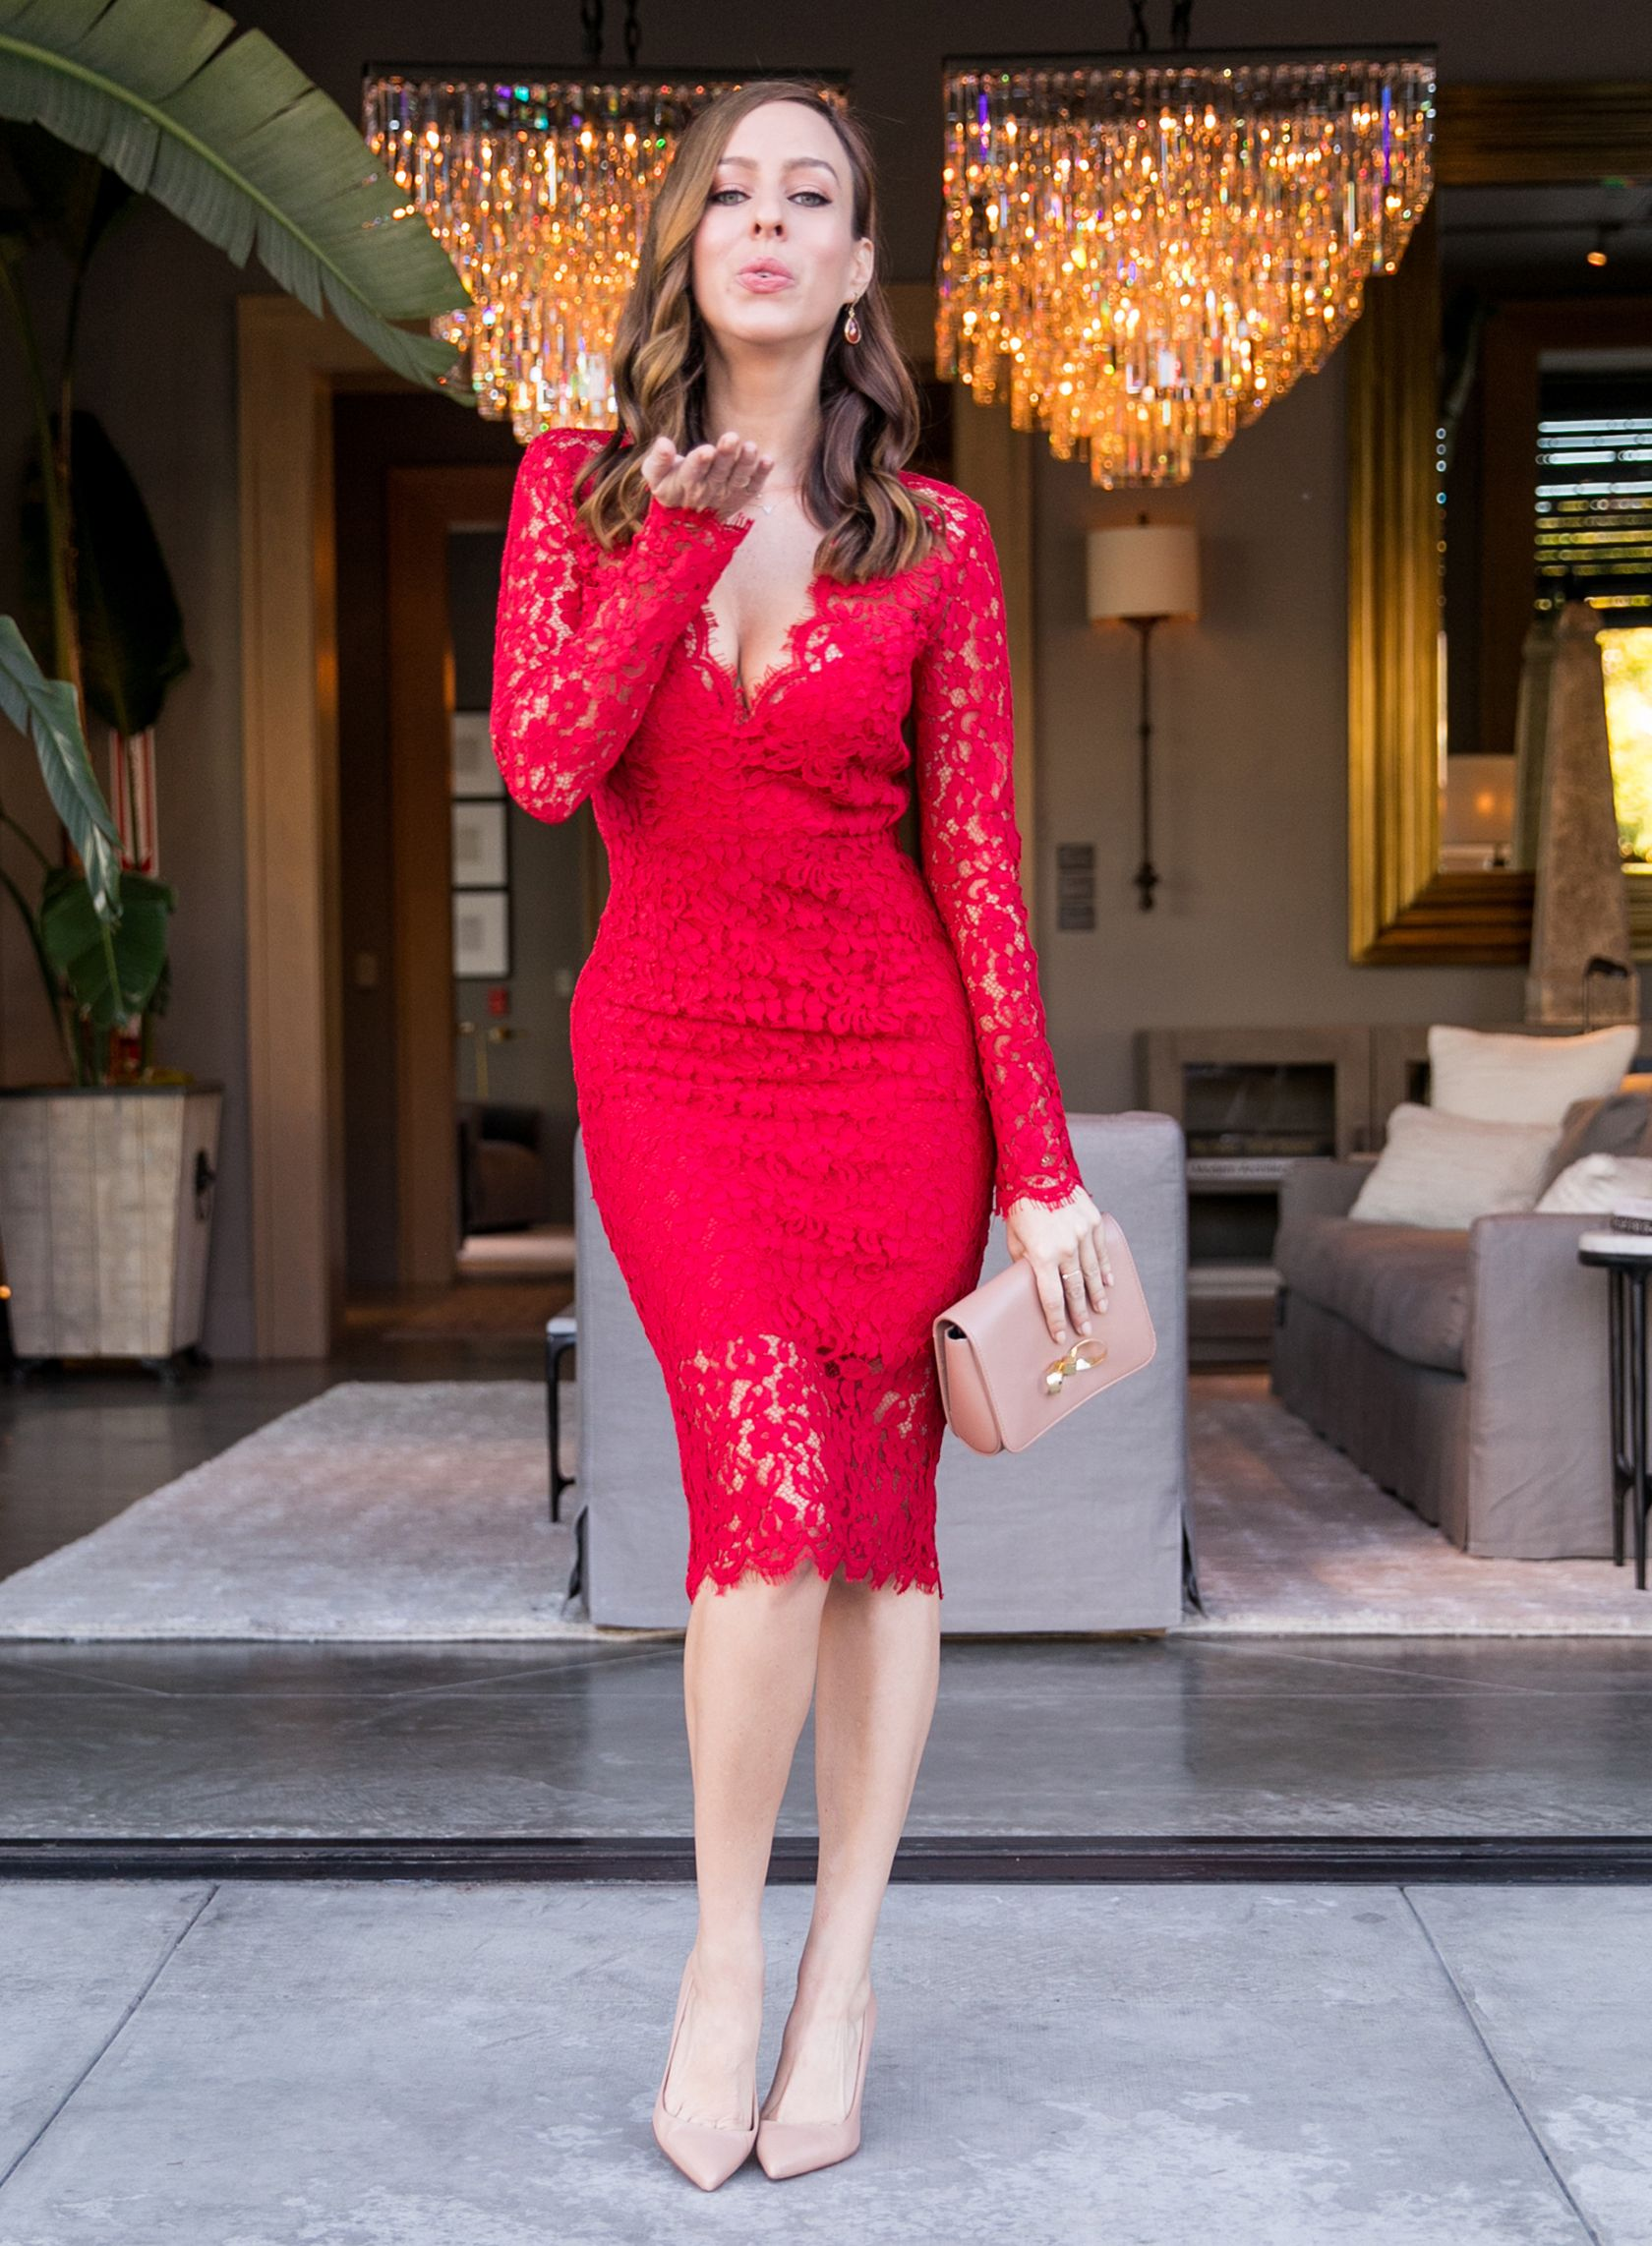 Red Long Sleeved Lace Dress Perfect For Valentine S Day Sydne Style Lace Dress Red Dress Outfit Red Long Sleeve Dress [ 2284 x 1680 Pixel ]